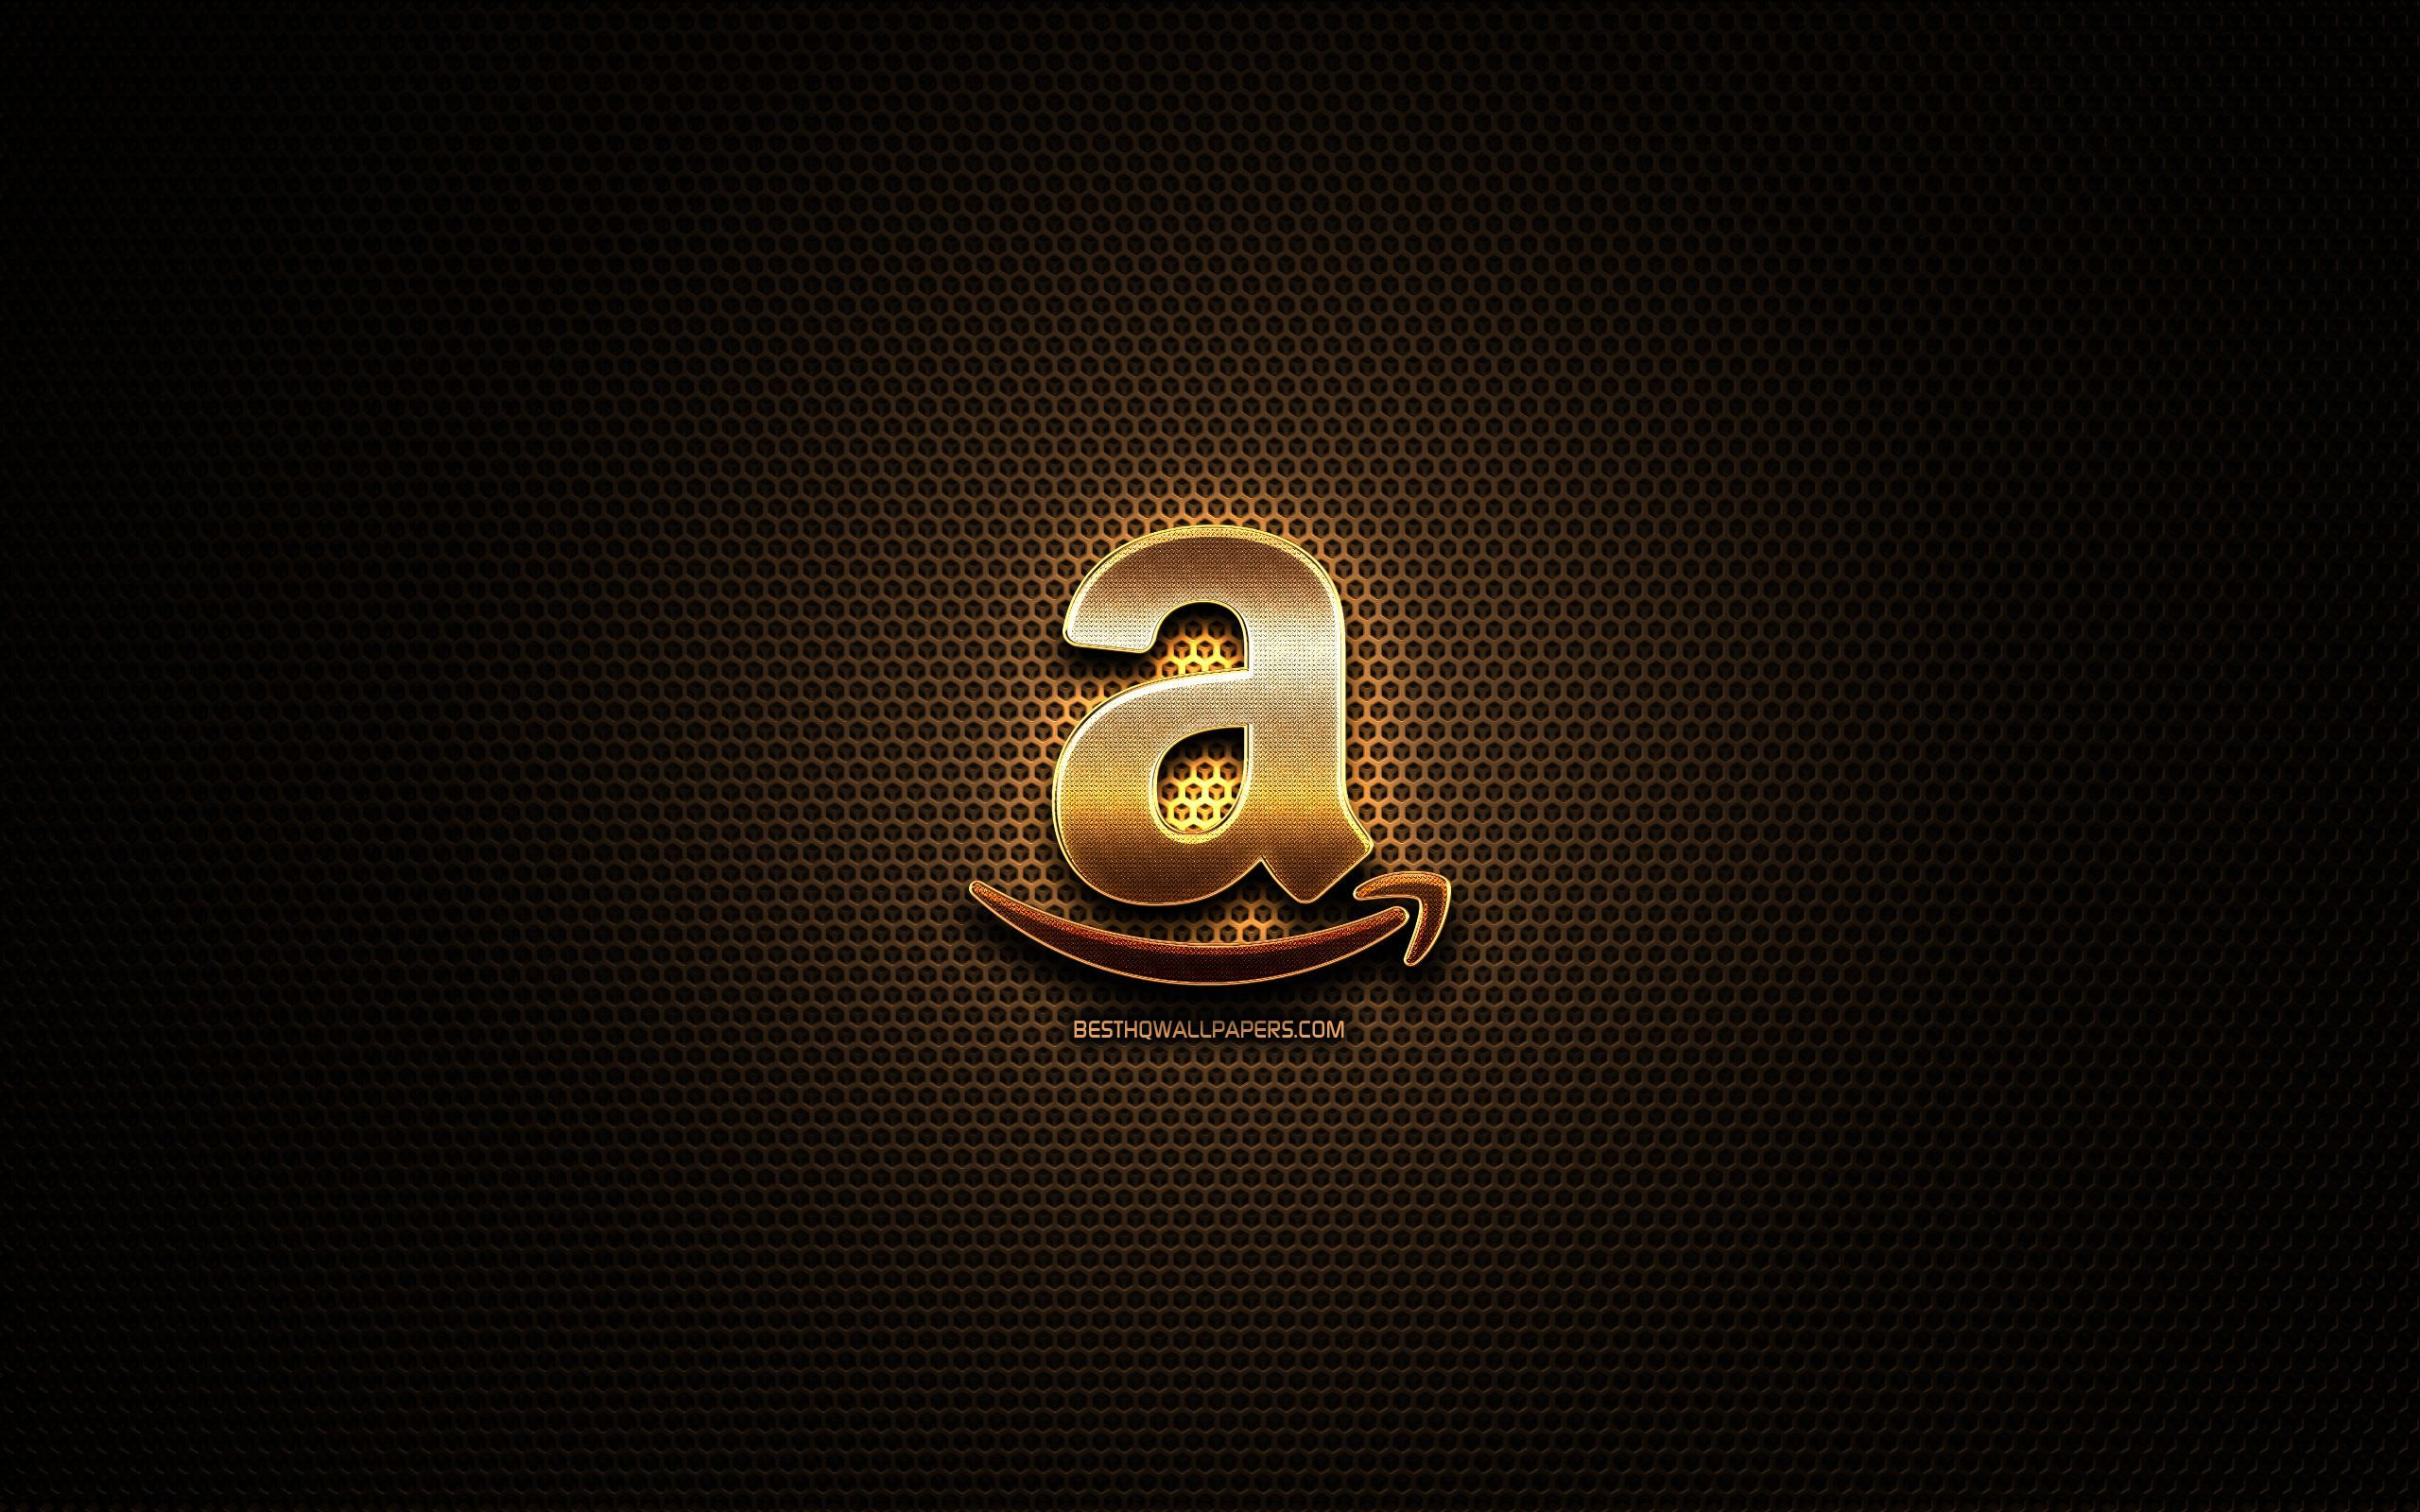 Amazon Card Wallpapers - Wallpaper Cave